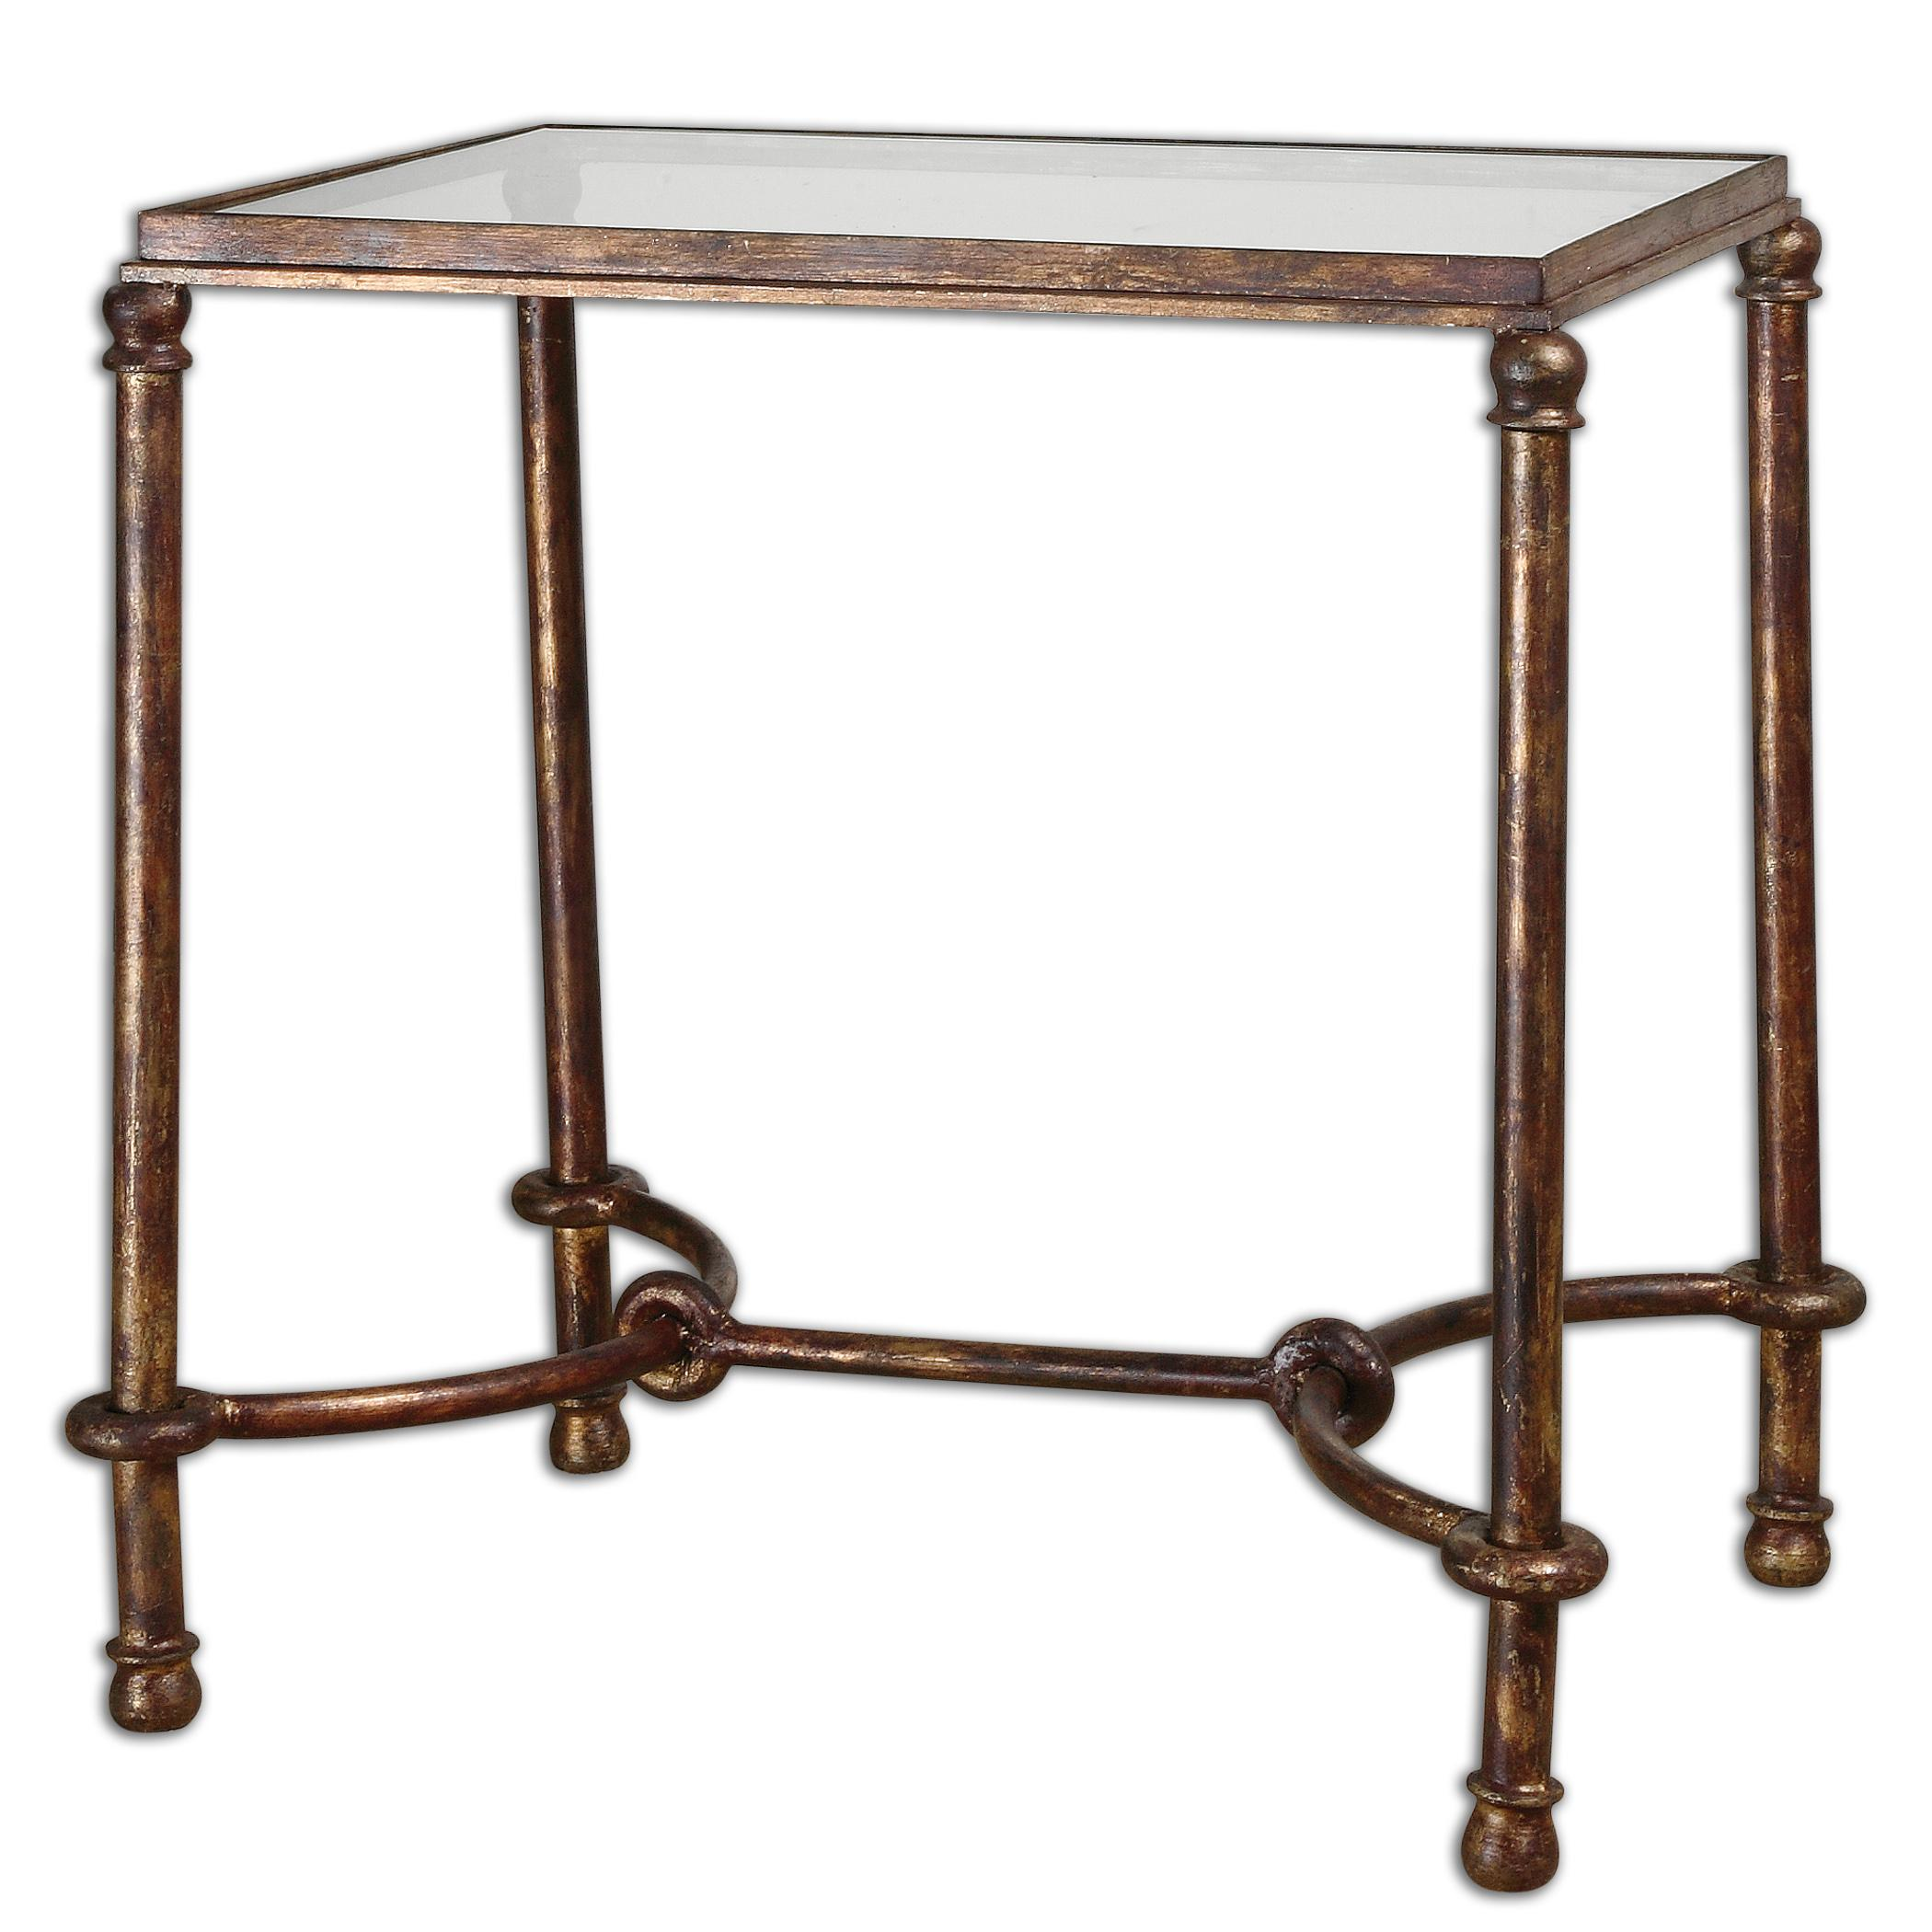 Accent Furniture - Occasional Tables Warring Iron End Table by Uttermost at Dream Home Interiors